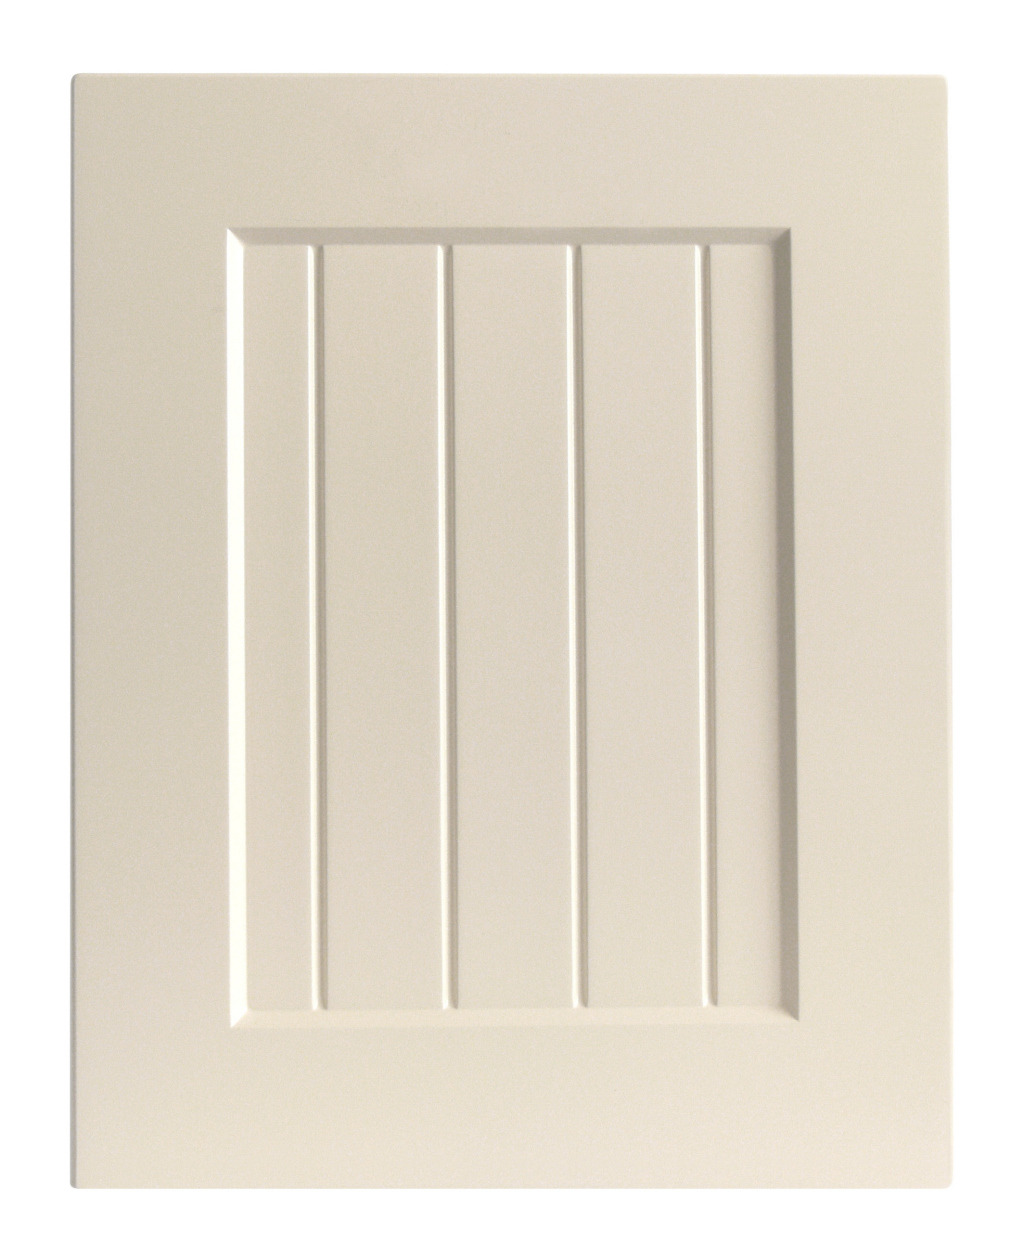 Custom Cabinet Doors Online Best Of What You Should Know About Pvc Cabinet Doors